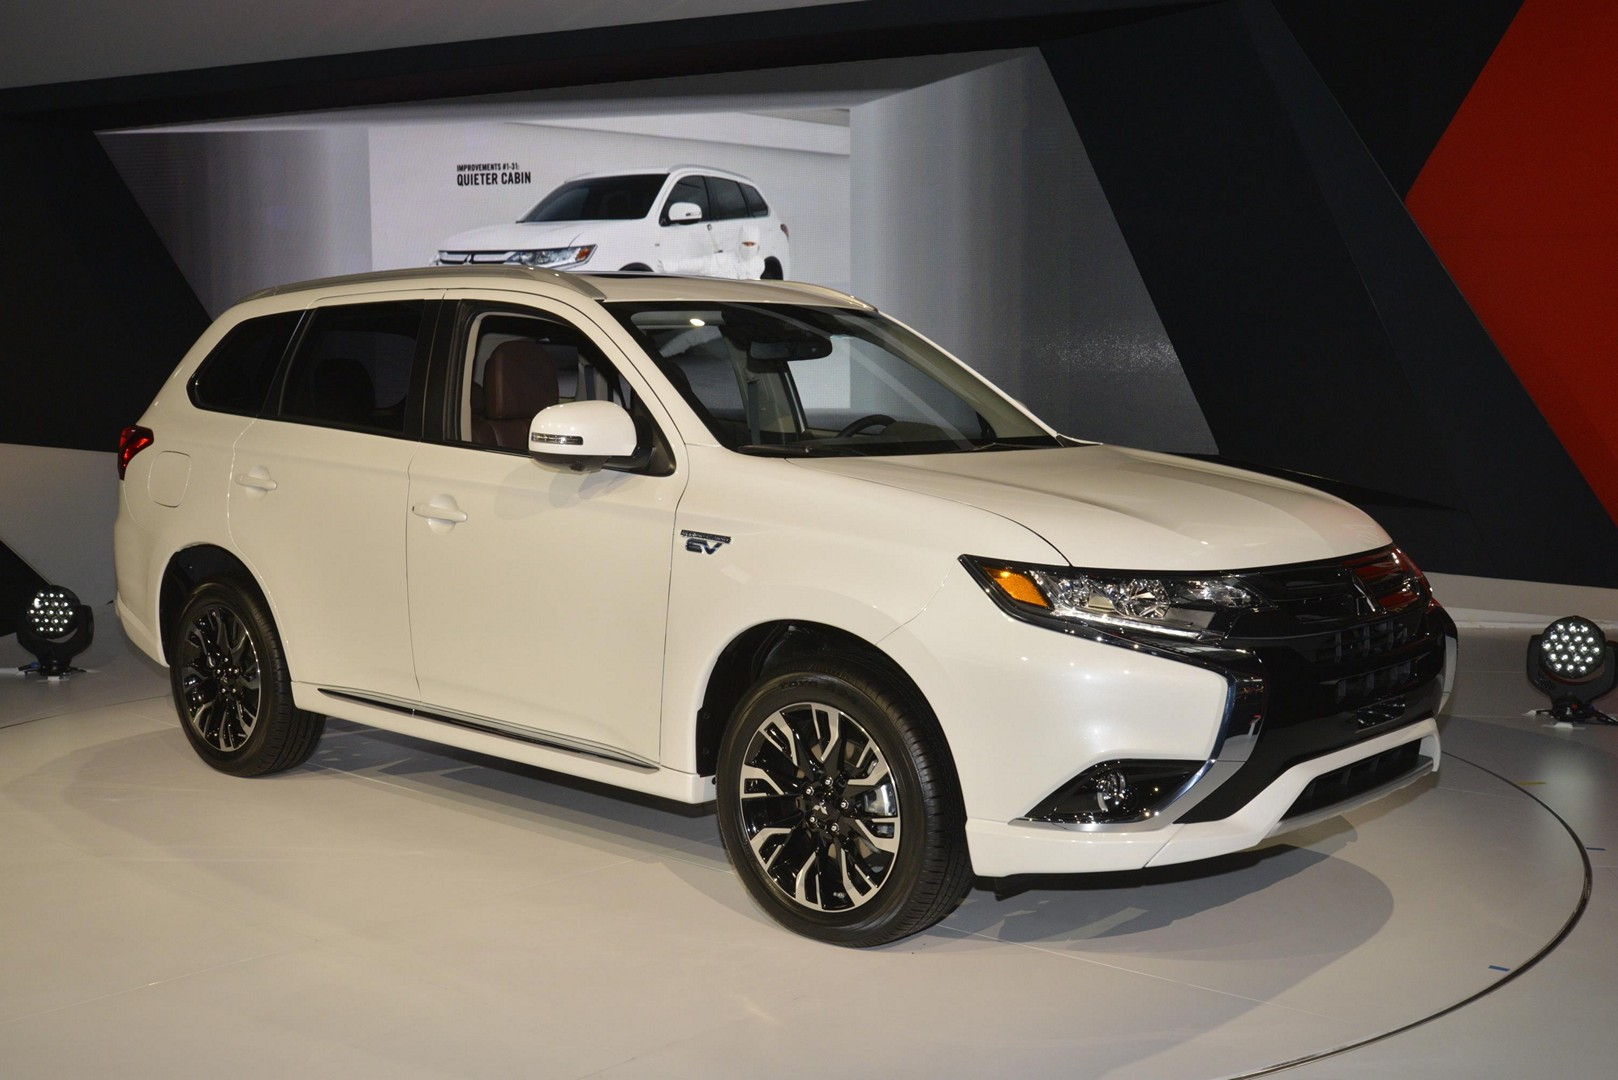 2017 outlander phev makes us debut mitsubishi promises